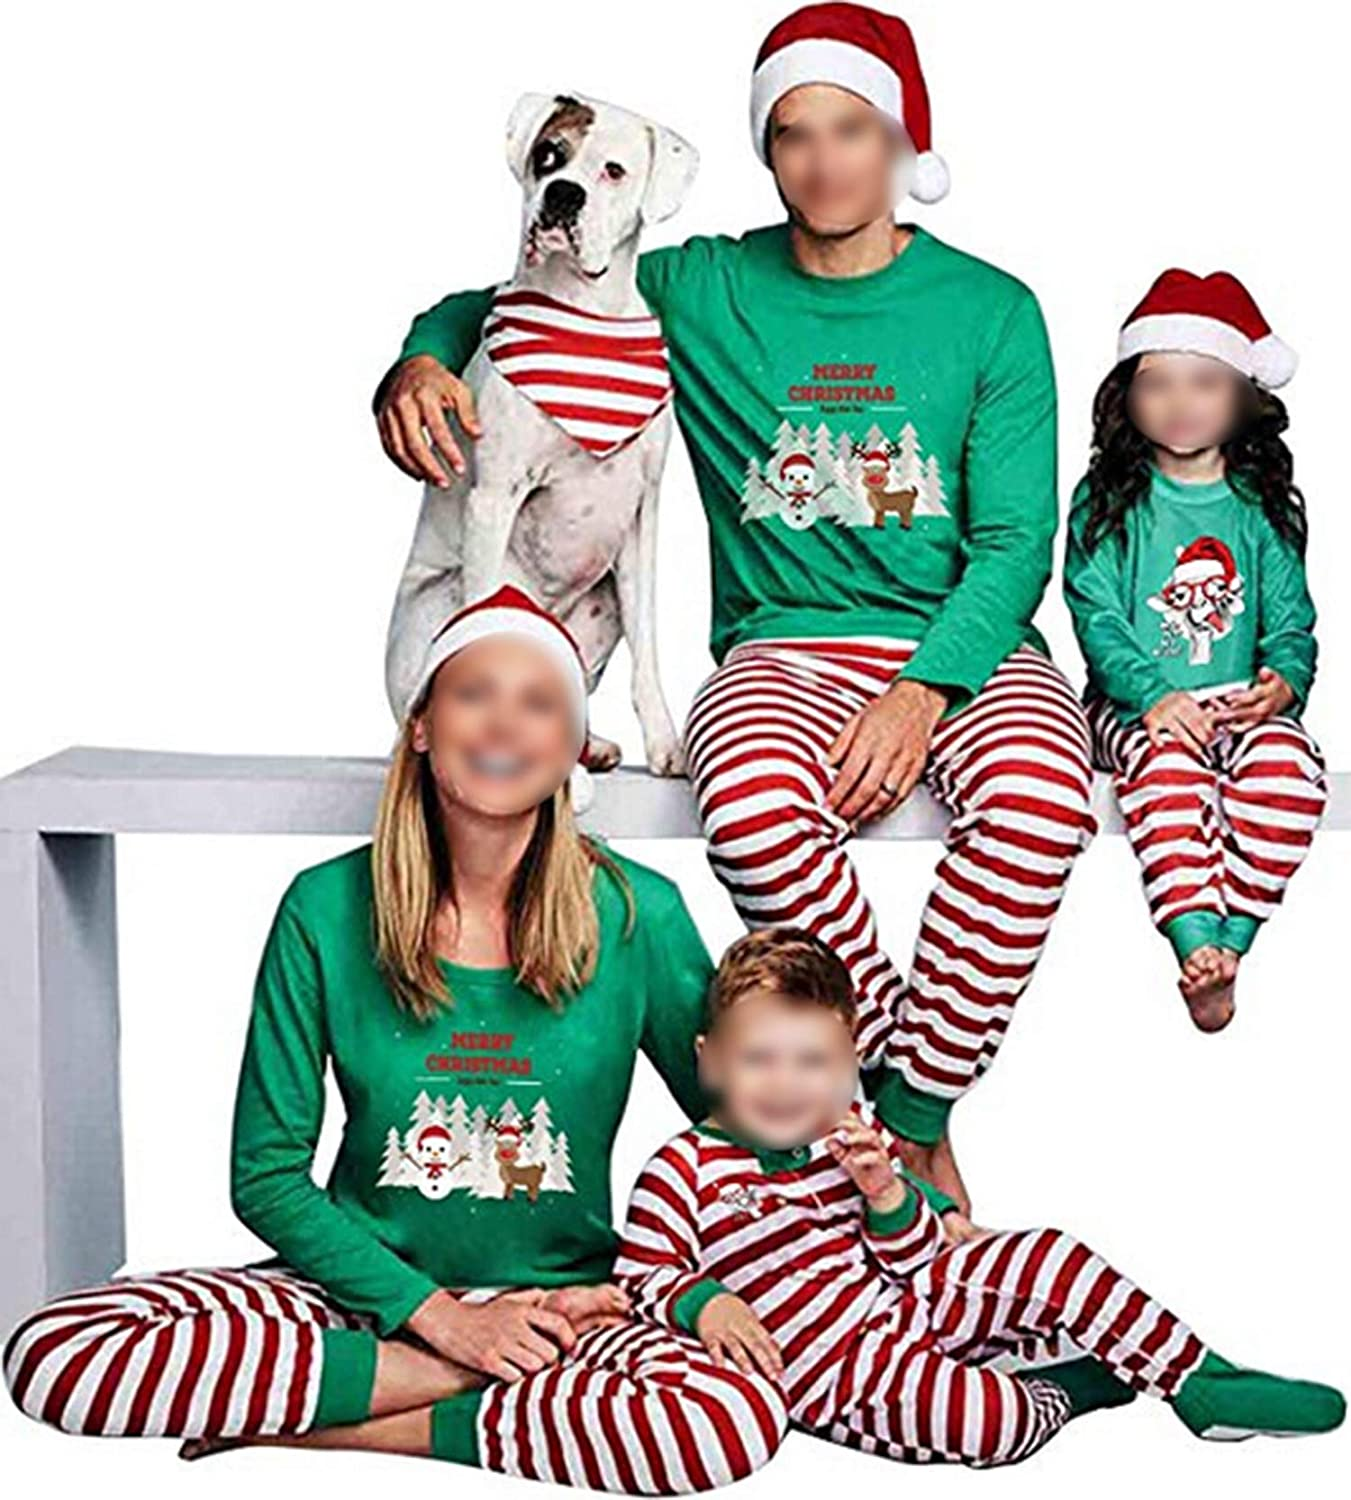 TUSFTAY Christmas Family Matching Pajamas Set Holiday PJs Striped Sleepwear